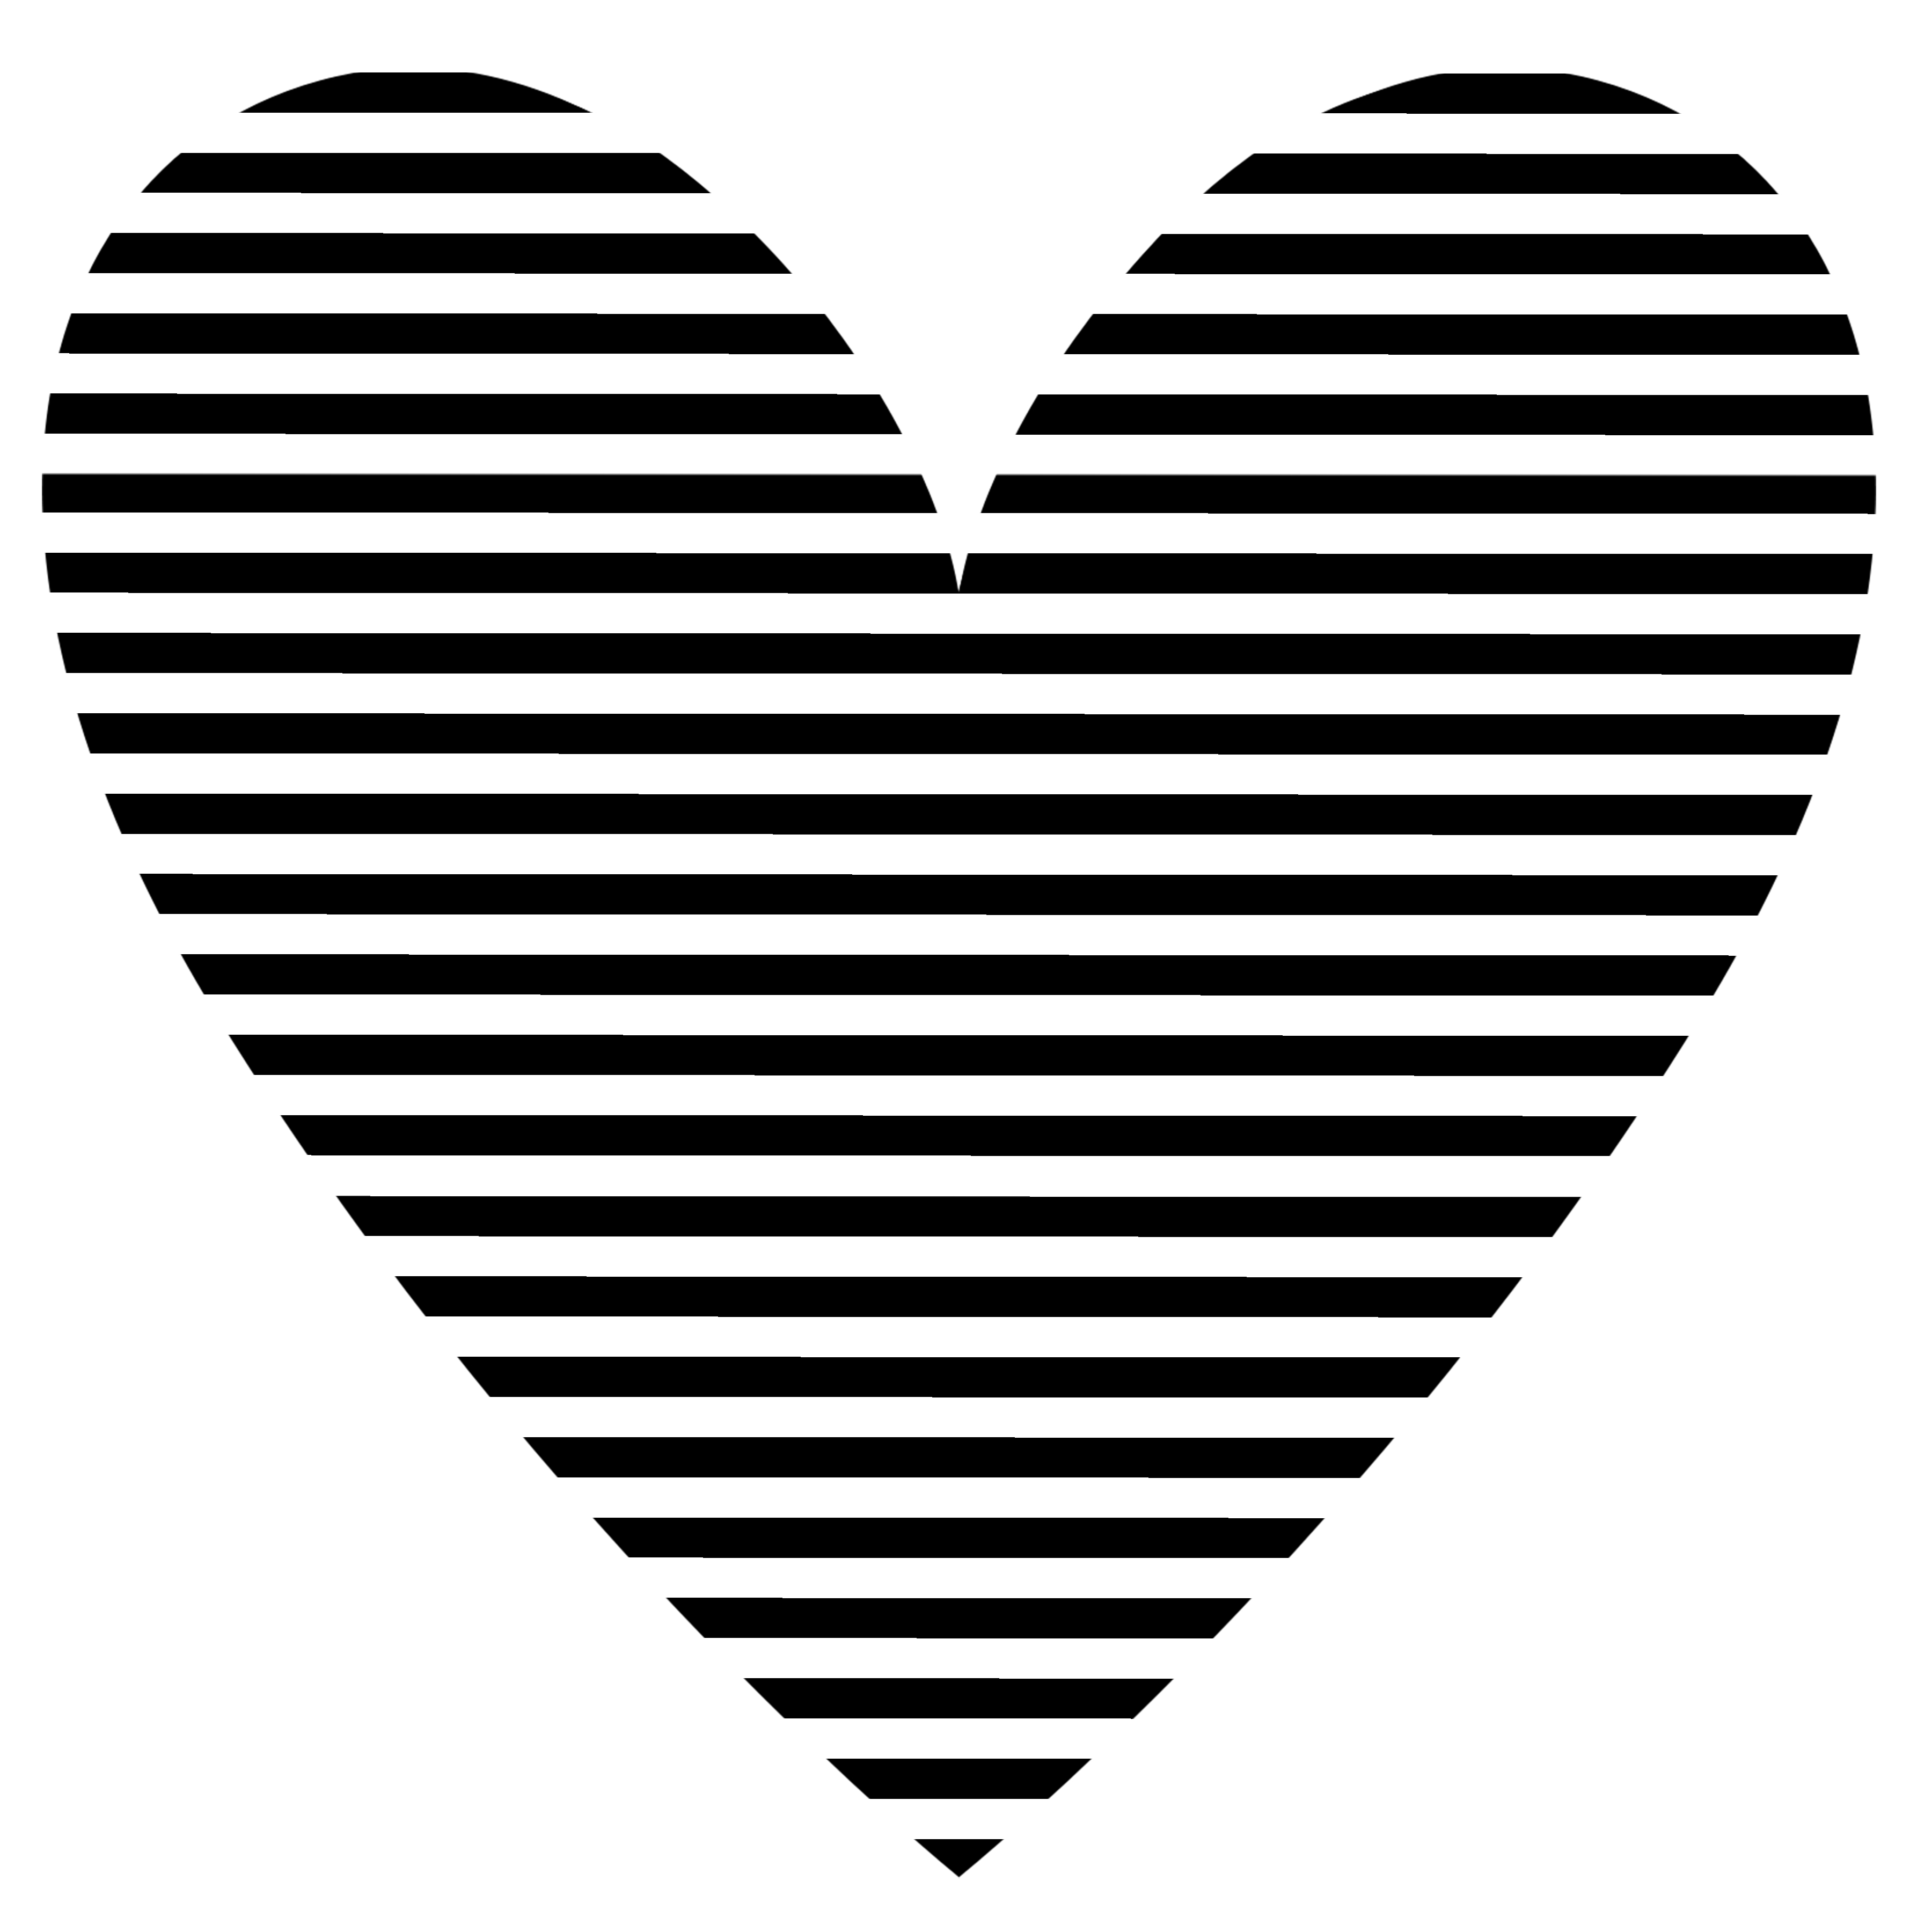 DIY Heart Shirts For Valentines Day The Stripey Kind